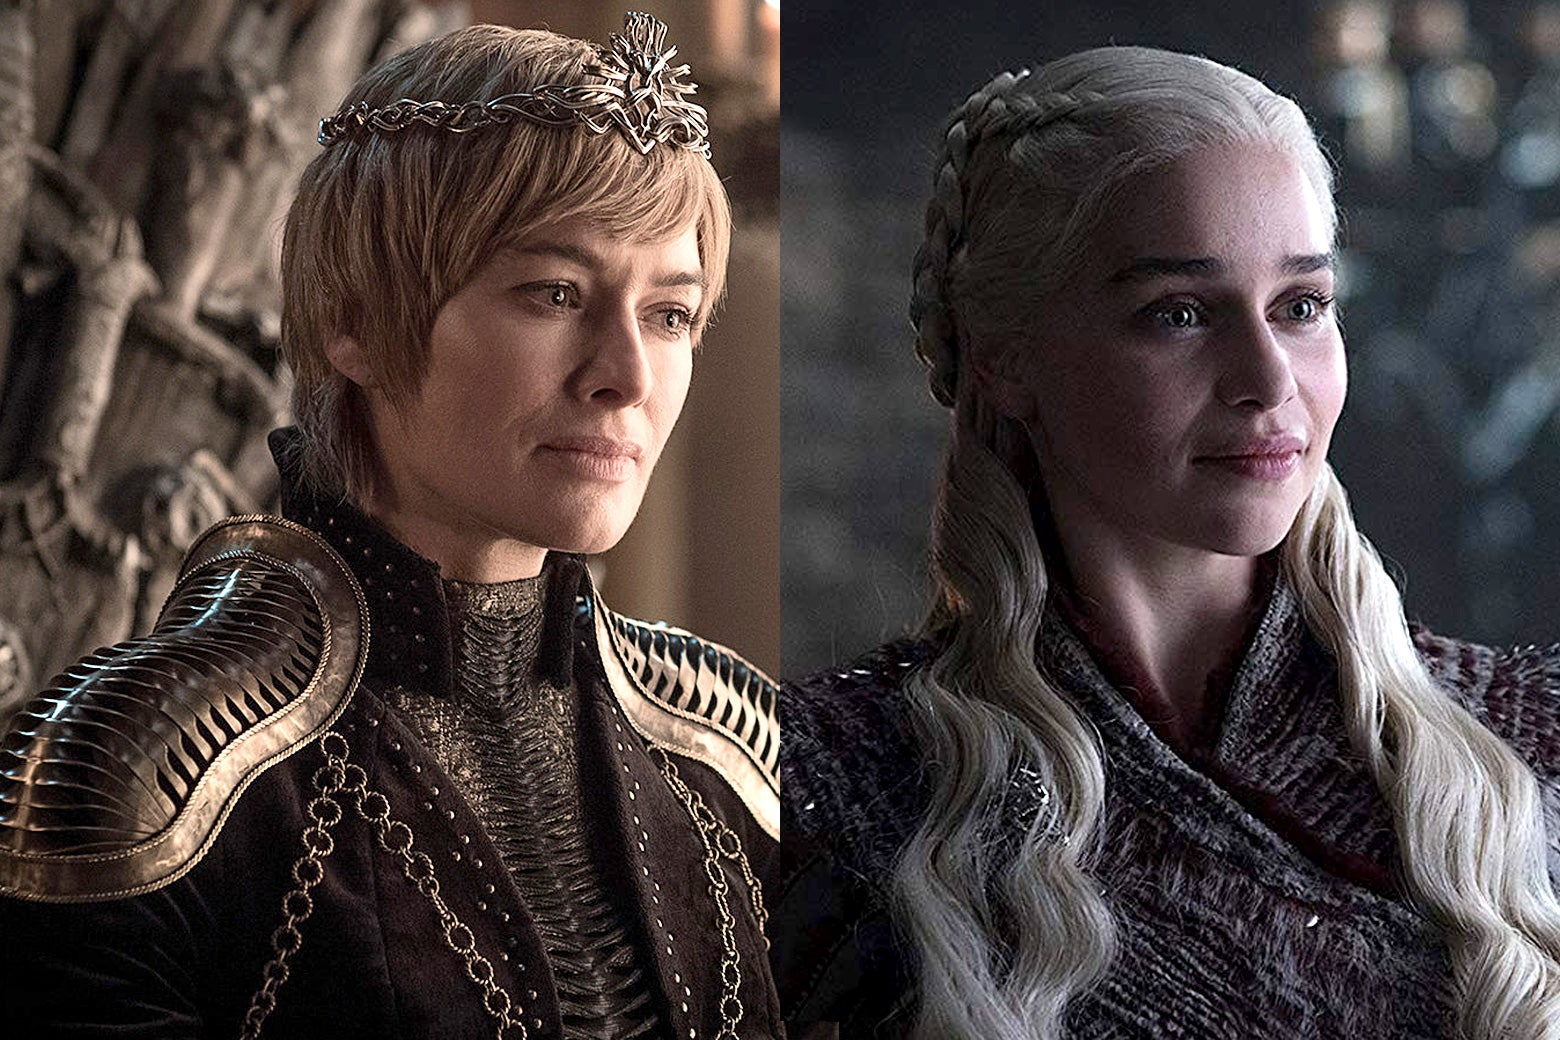 Side-by-side images of Lena Headey as Cersei Lannister and Emilia Clarke as Daenerys Targaryen in Game of Thrones.